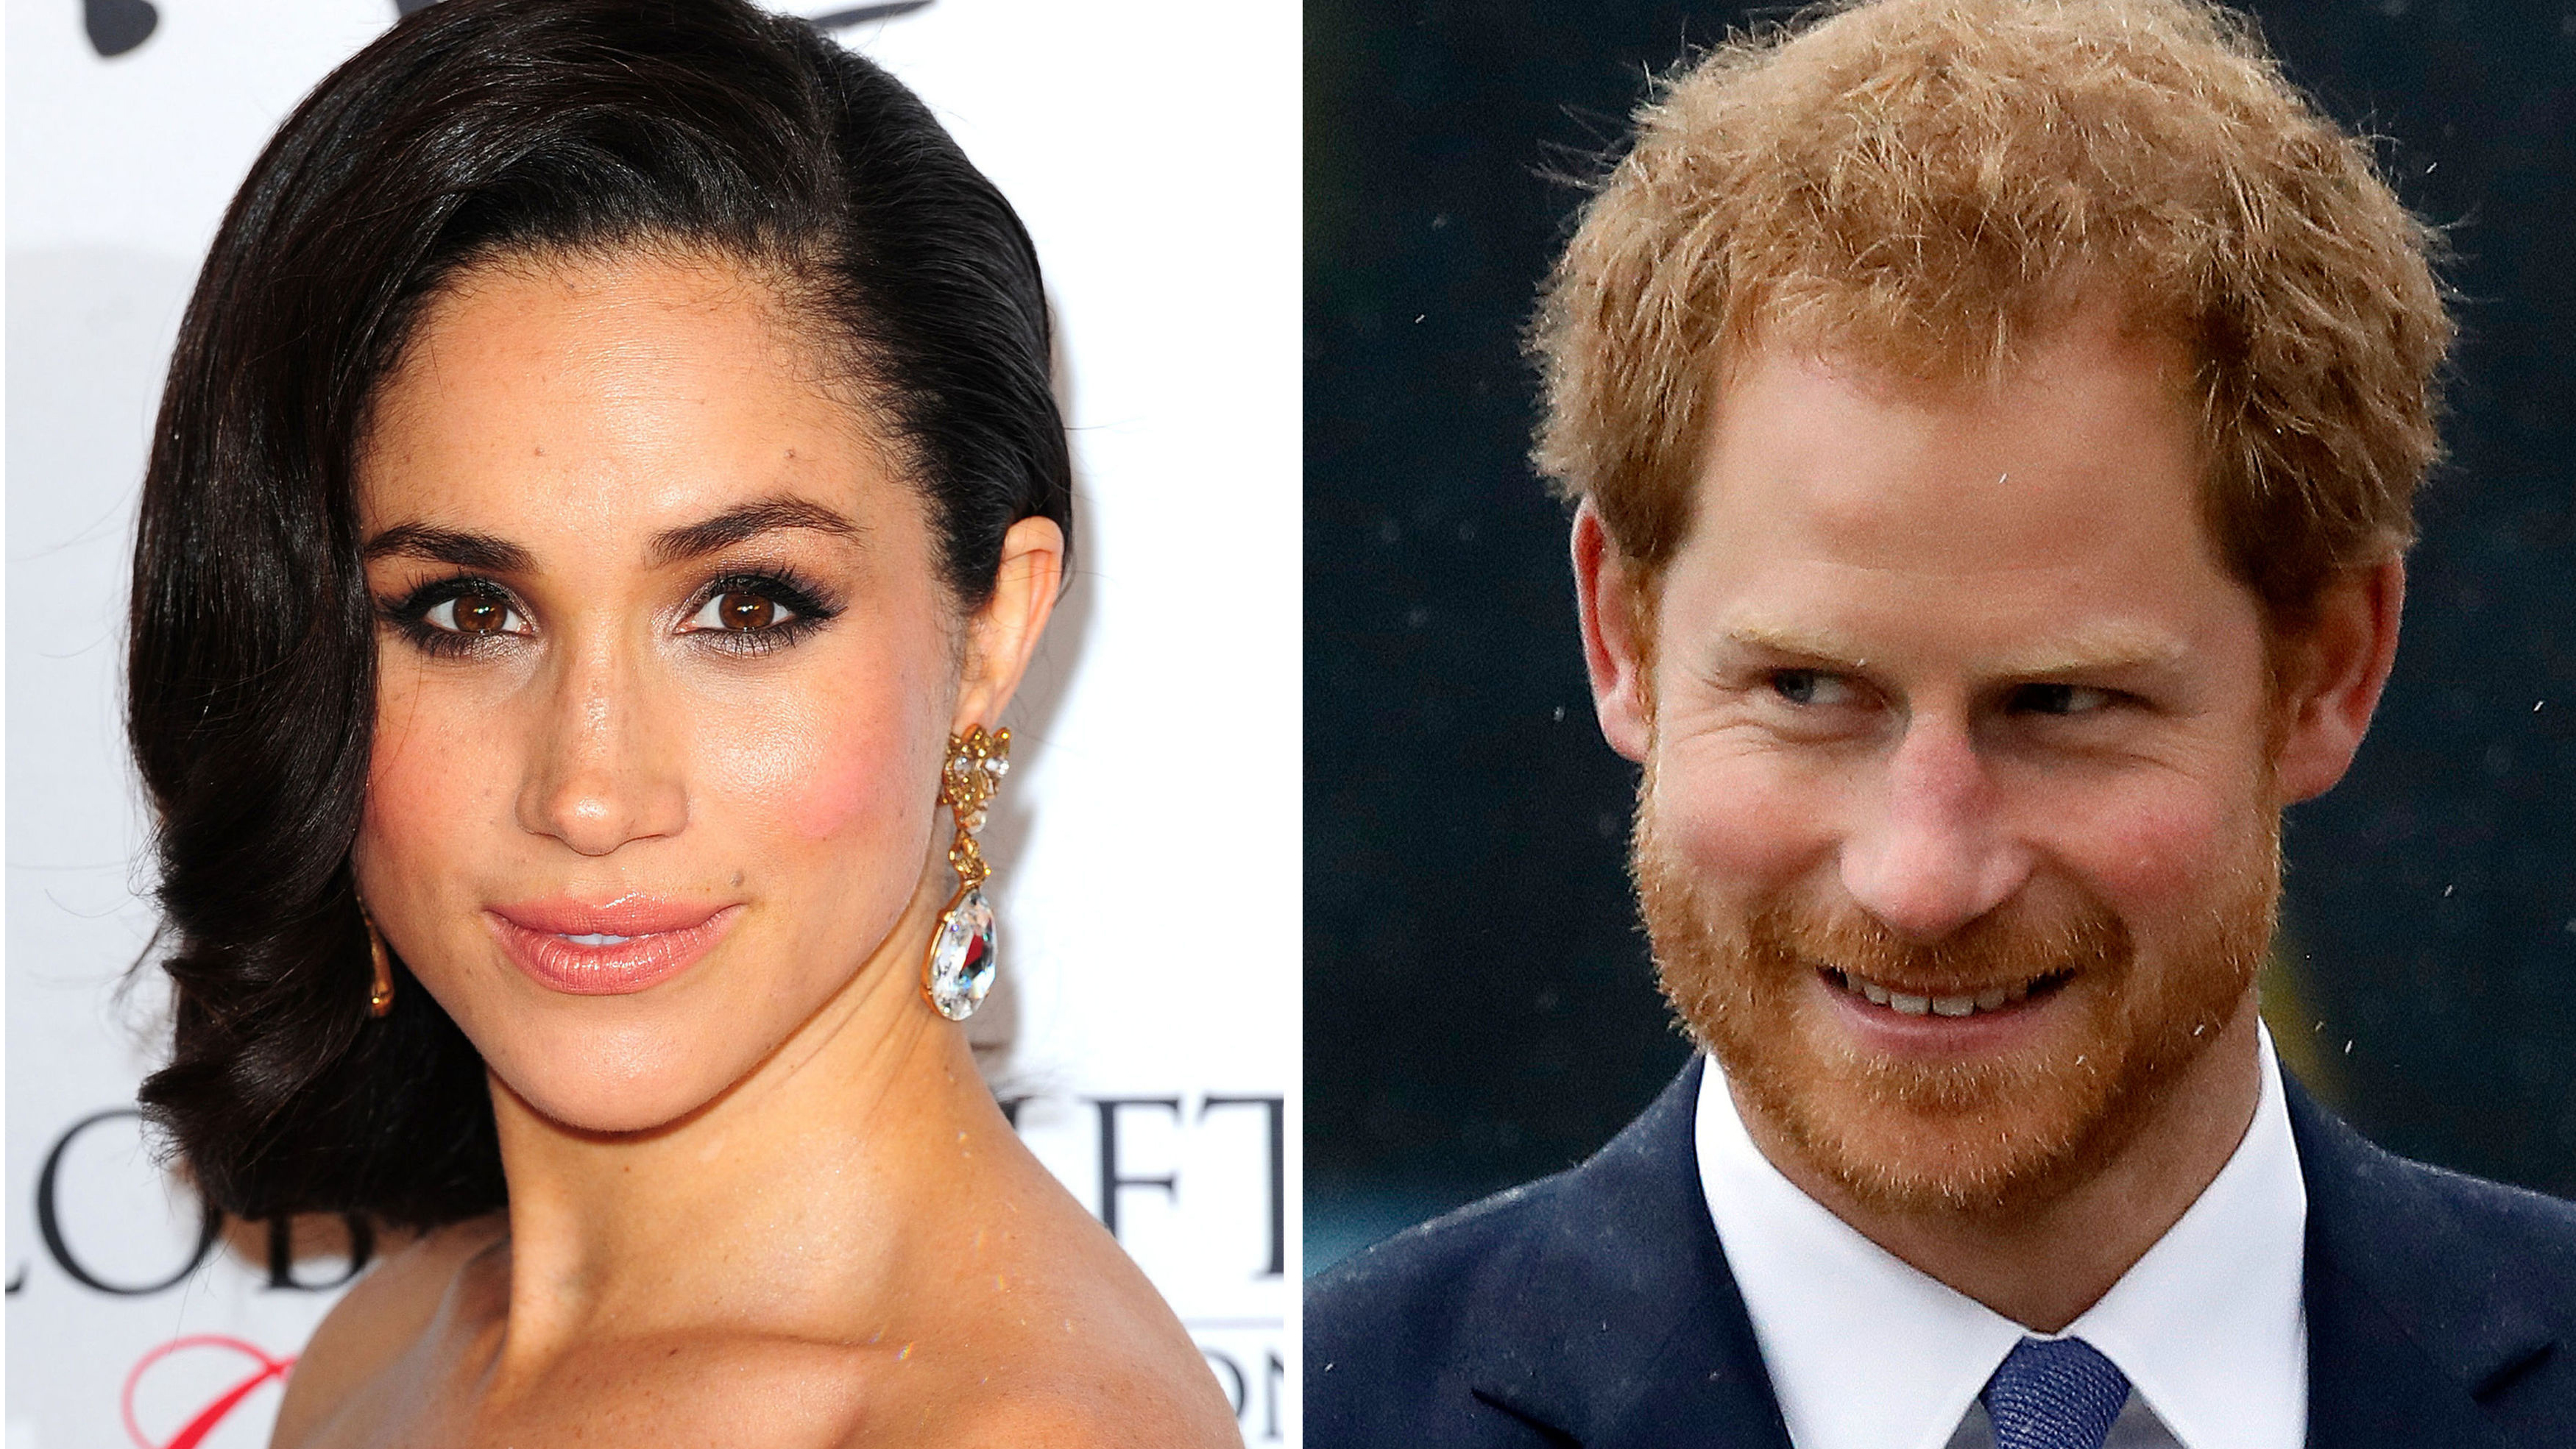 Inside Prince Harry's grand plan to make Meghan Markle his Princess